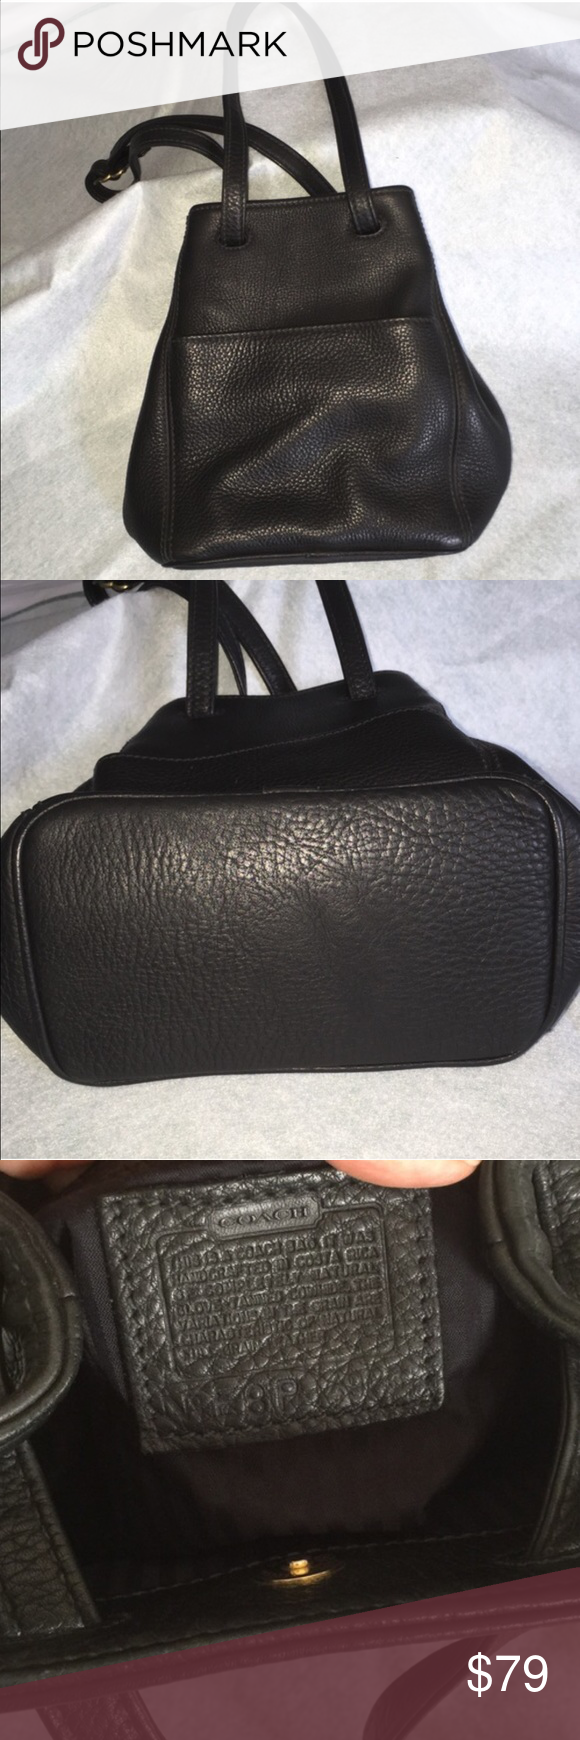 """Beautiful Coach Vintage Convertible Purse This beautiful, black, vintage Coach purse is in excellent condition. It has a very clever convertible design. Can be worn on your shoulder (11"""" shoulder drop) or as a cross body bag with strap pulled all the way through. It is very on trend right now. 2 outer pockets make it so convenient to slip your phone (fits my iPhone 6s plus) & keys into for easy access. 1 outer pocket has a snap closure. Serial #E8P-4923. 10"""" wide on bottom, 10"""" tall, 5""""…"""